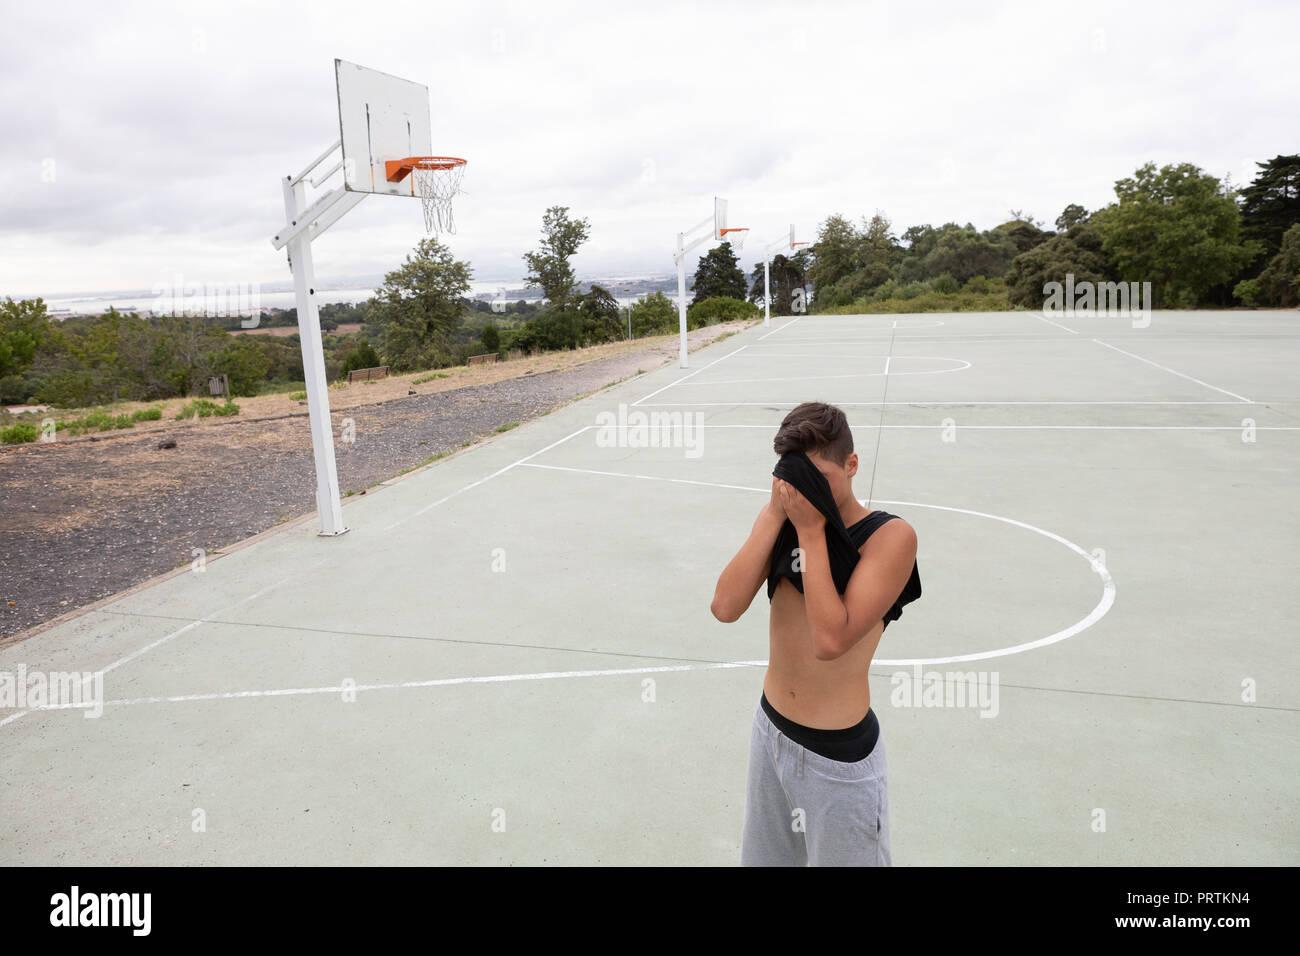 Male teenage basketball player wiping his brow with vest on basketball court - Stock Image